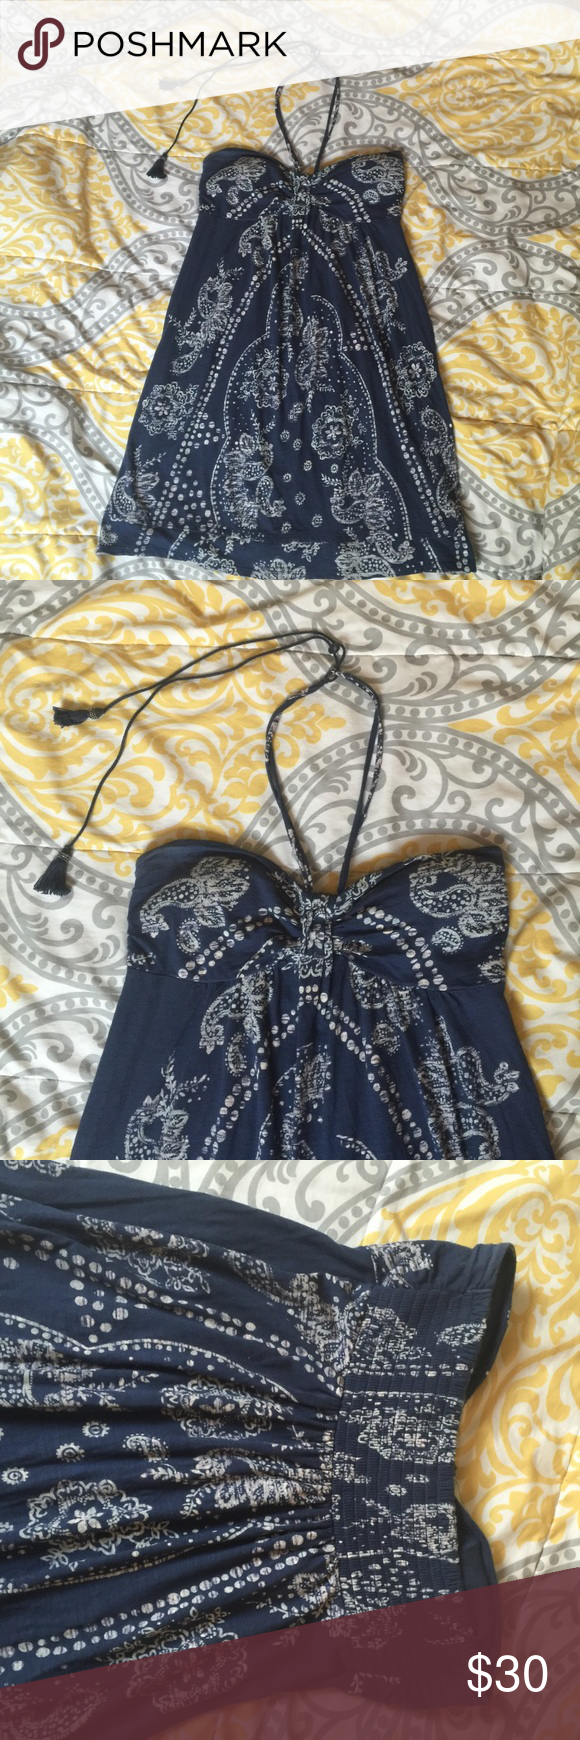 ❤️ American Eagle dress ❤️ Like new American Eagle dress. Only worn 2-3 times. Flawless! It has a halter strap that goes around the neck, then the strings with tassels lets you adjust it to be more loose, or tighter. Very cute navy and ivory pattern. Also, the chest has built in padding, so you don't have to wear a bra. 🙌🏼 %100 cotton. American Eagle Outfitters Dresses Midi